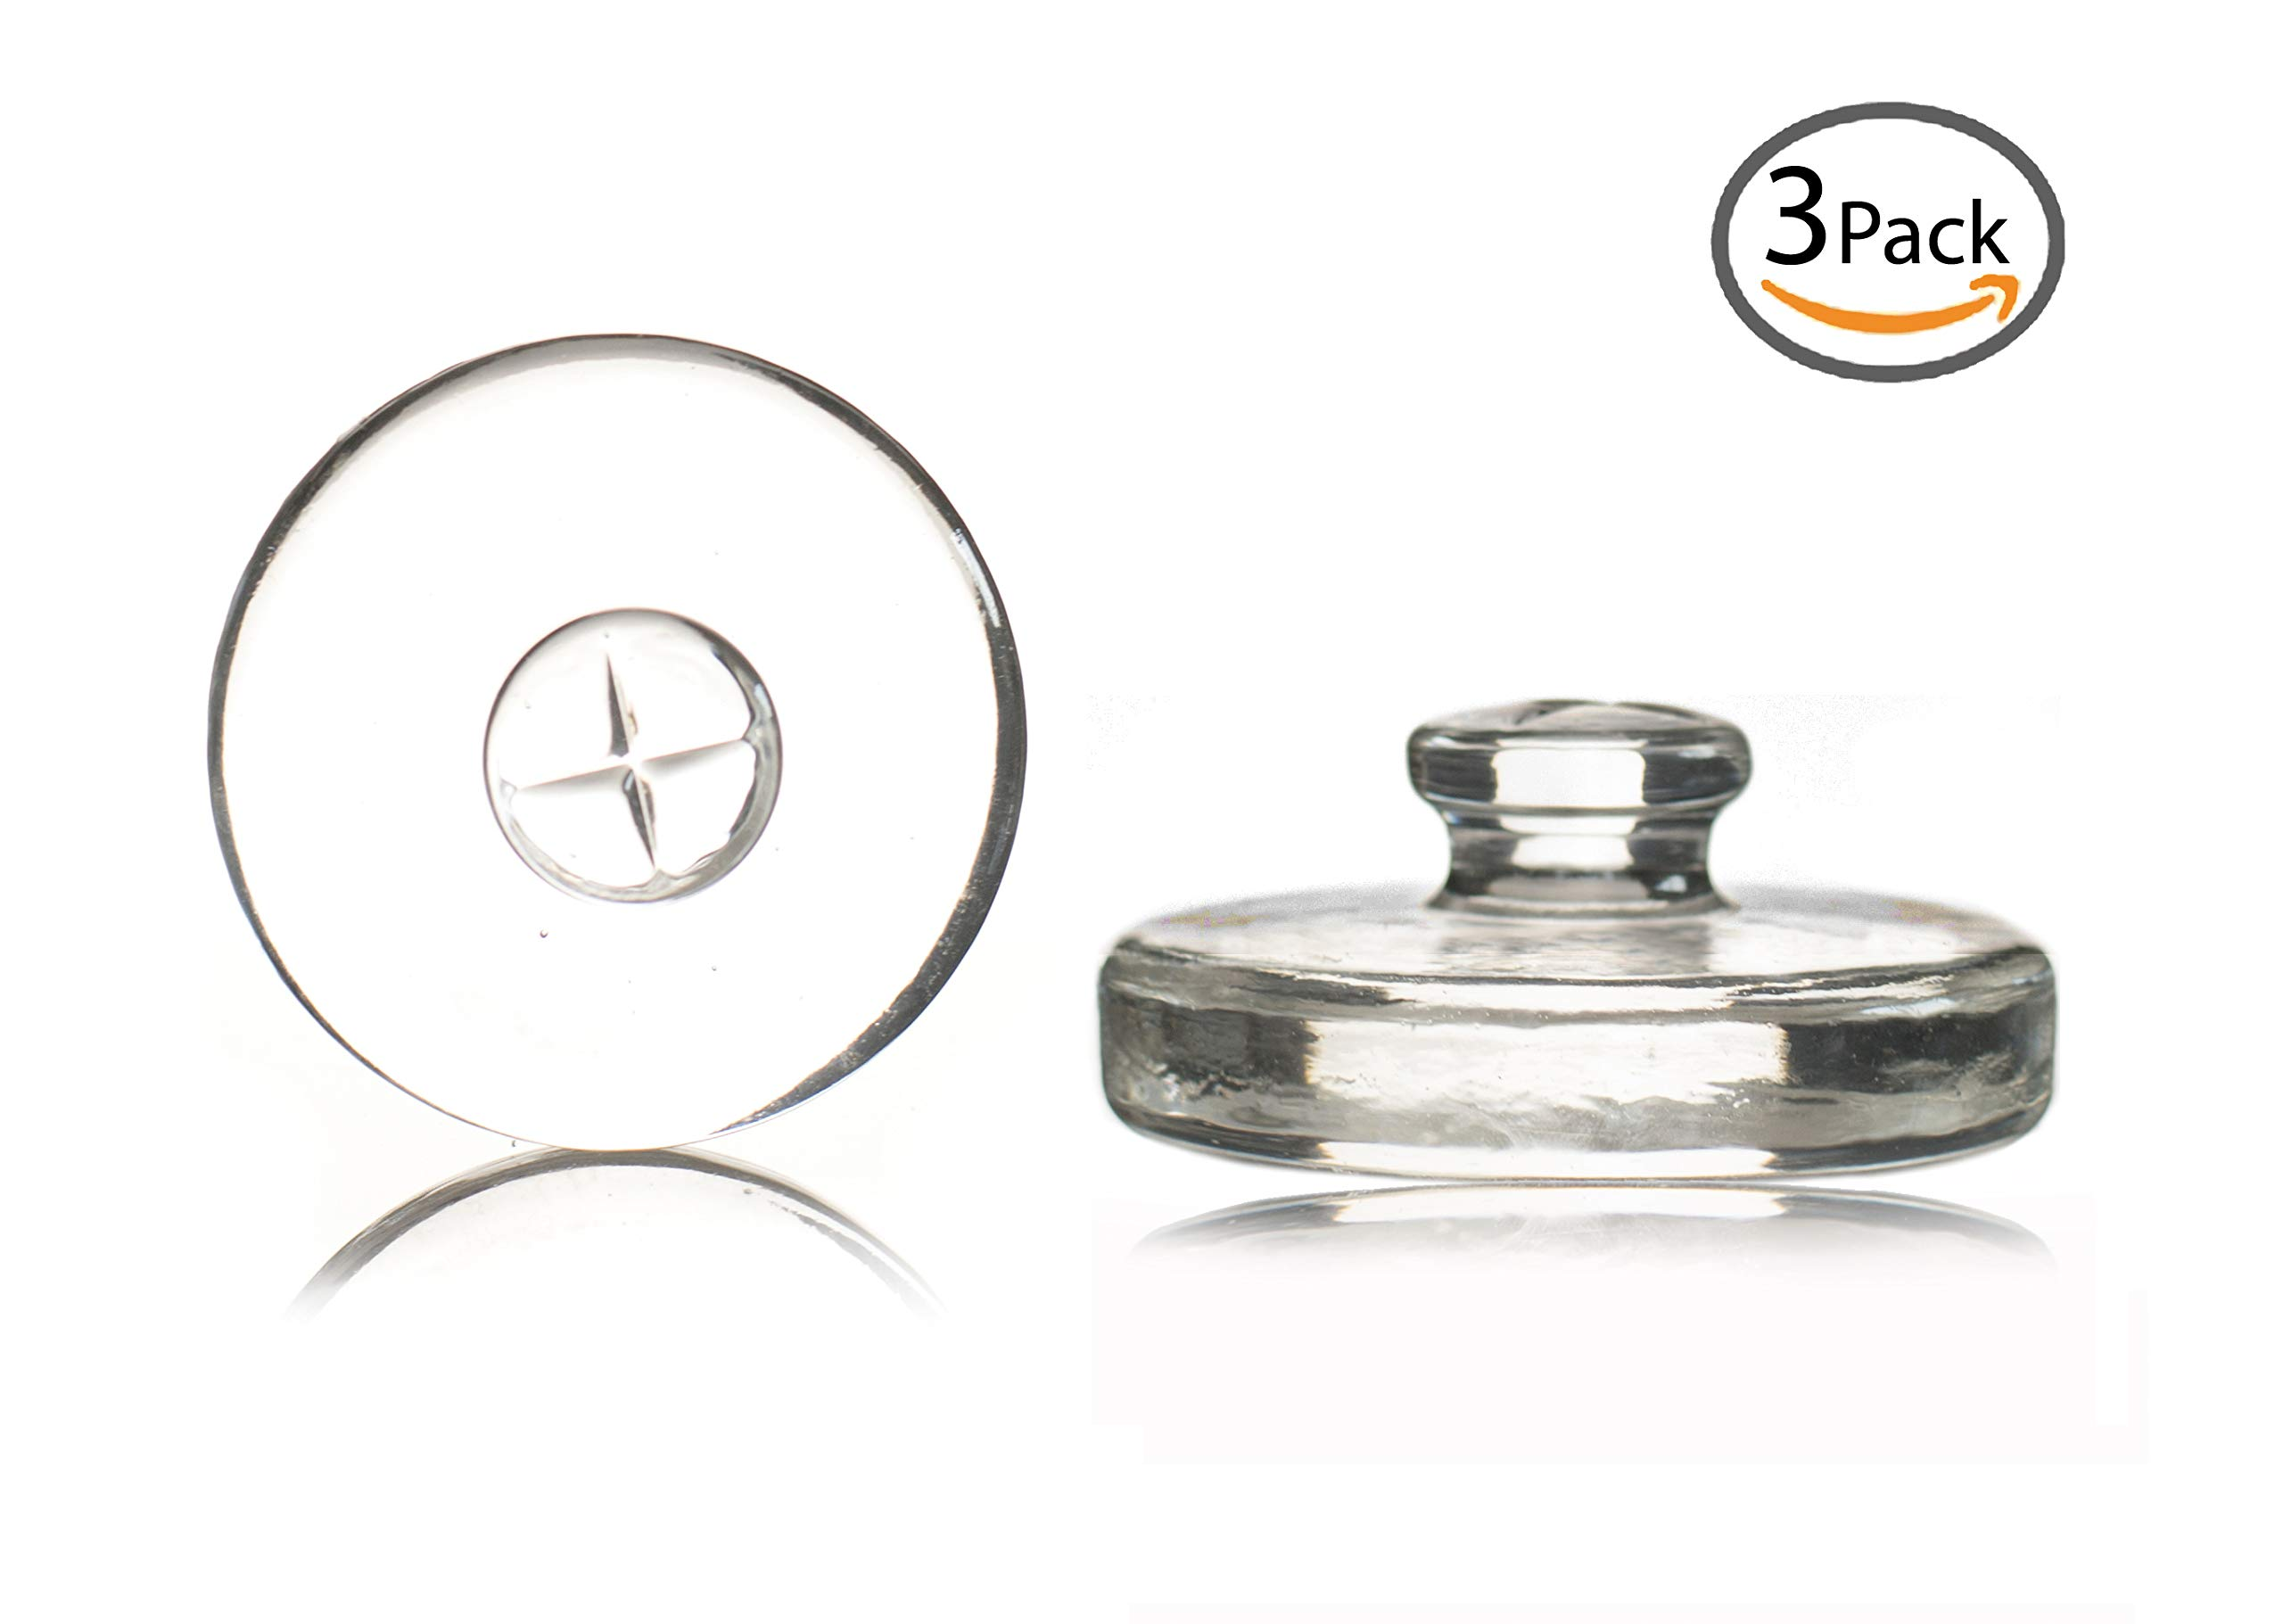 3 Premium Fermenting Weights, Heavy Hand-Crafted Glass Fermentation Weights with Easy Handle for Wide Mouth Mason Jar Fermenting Sauerkraut, Pickles, Kimchi and More Home Fermented Foods